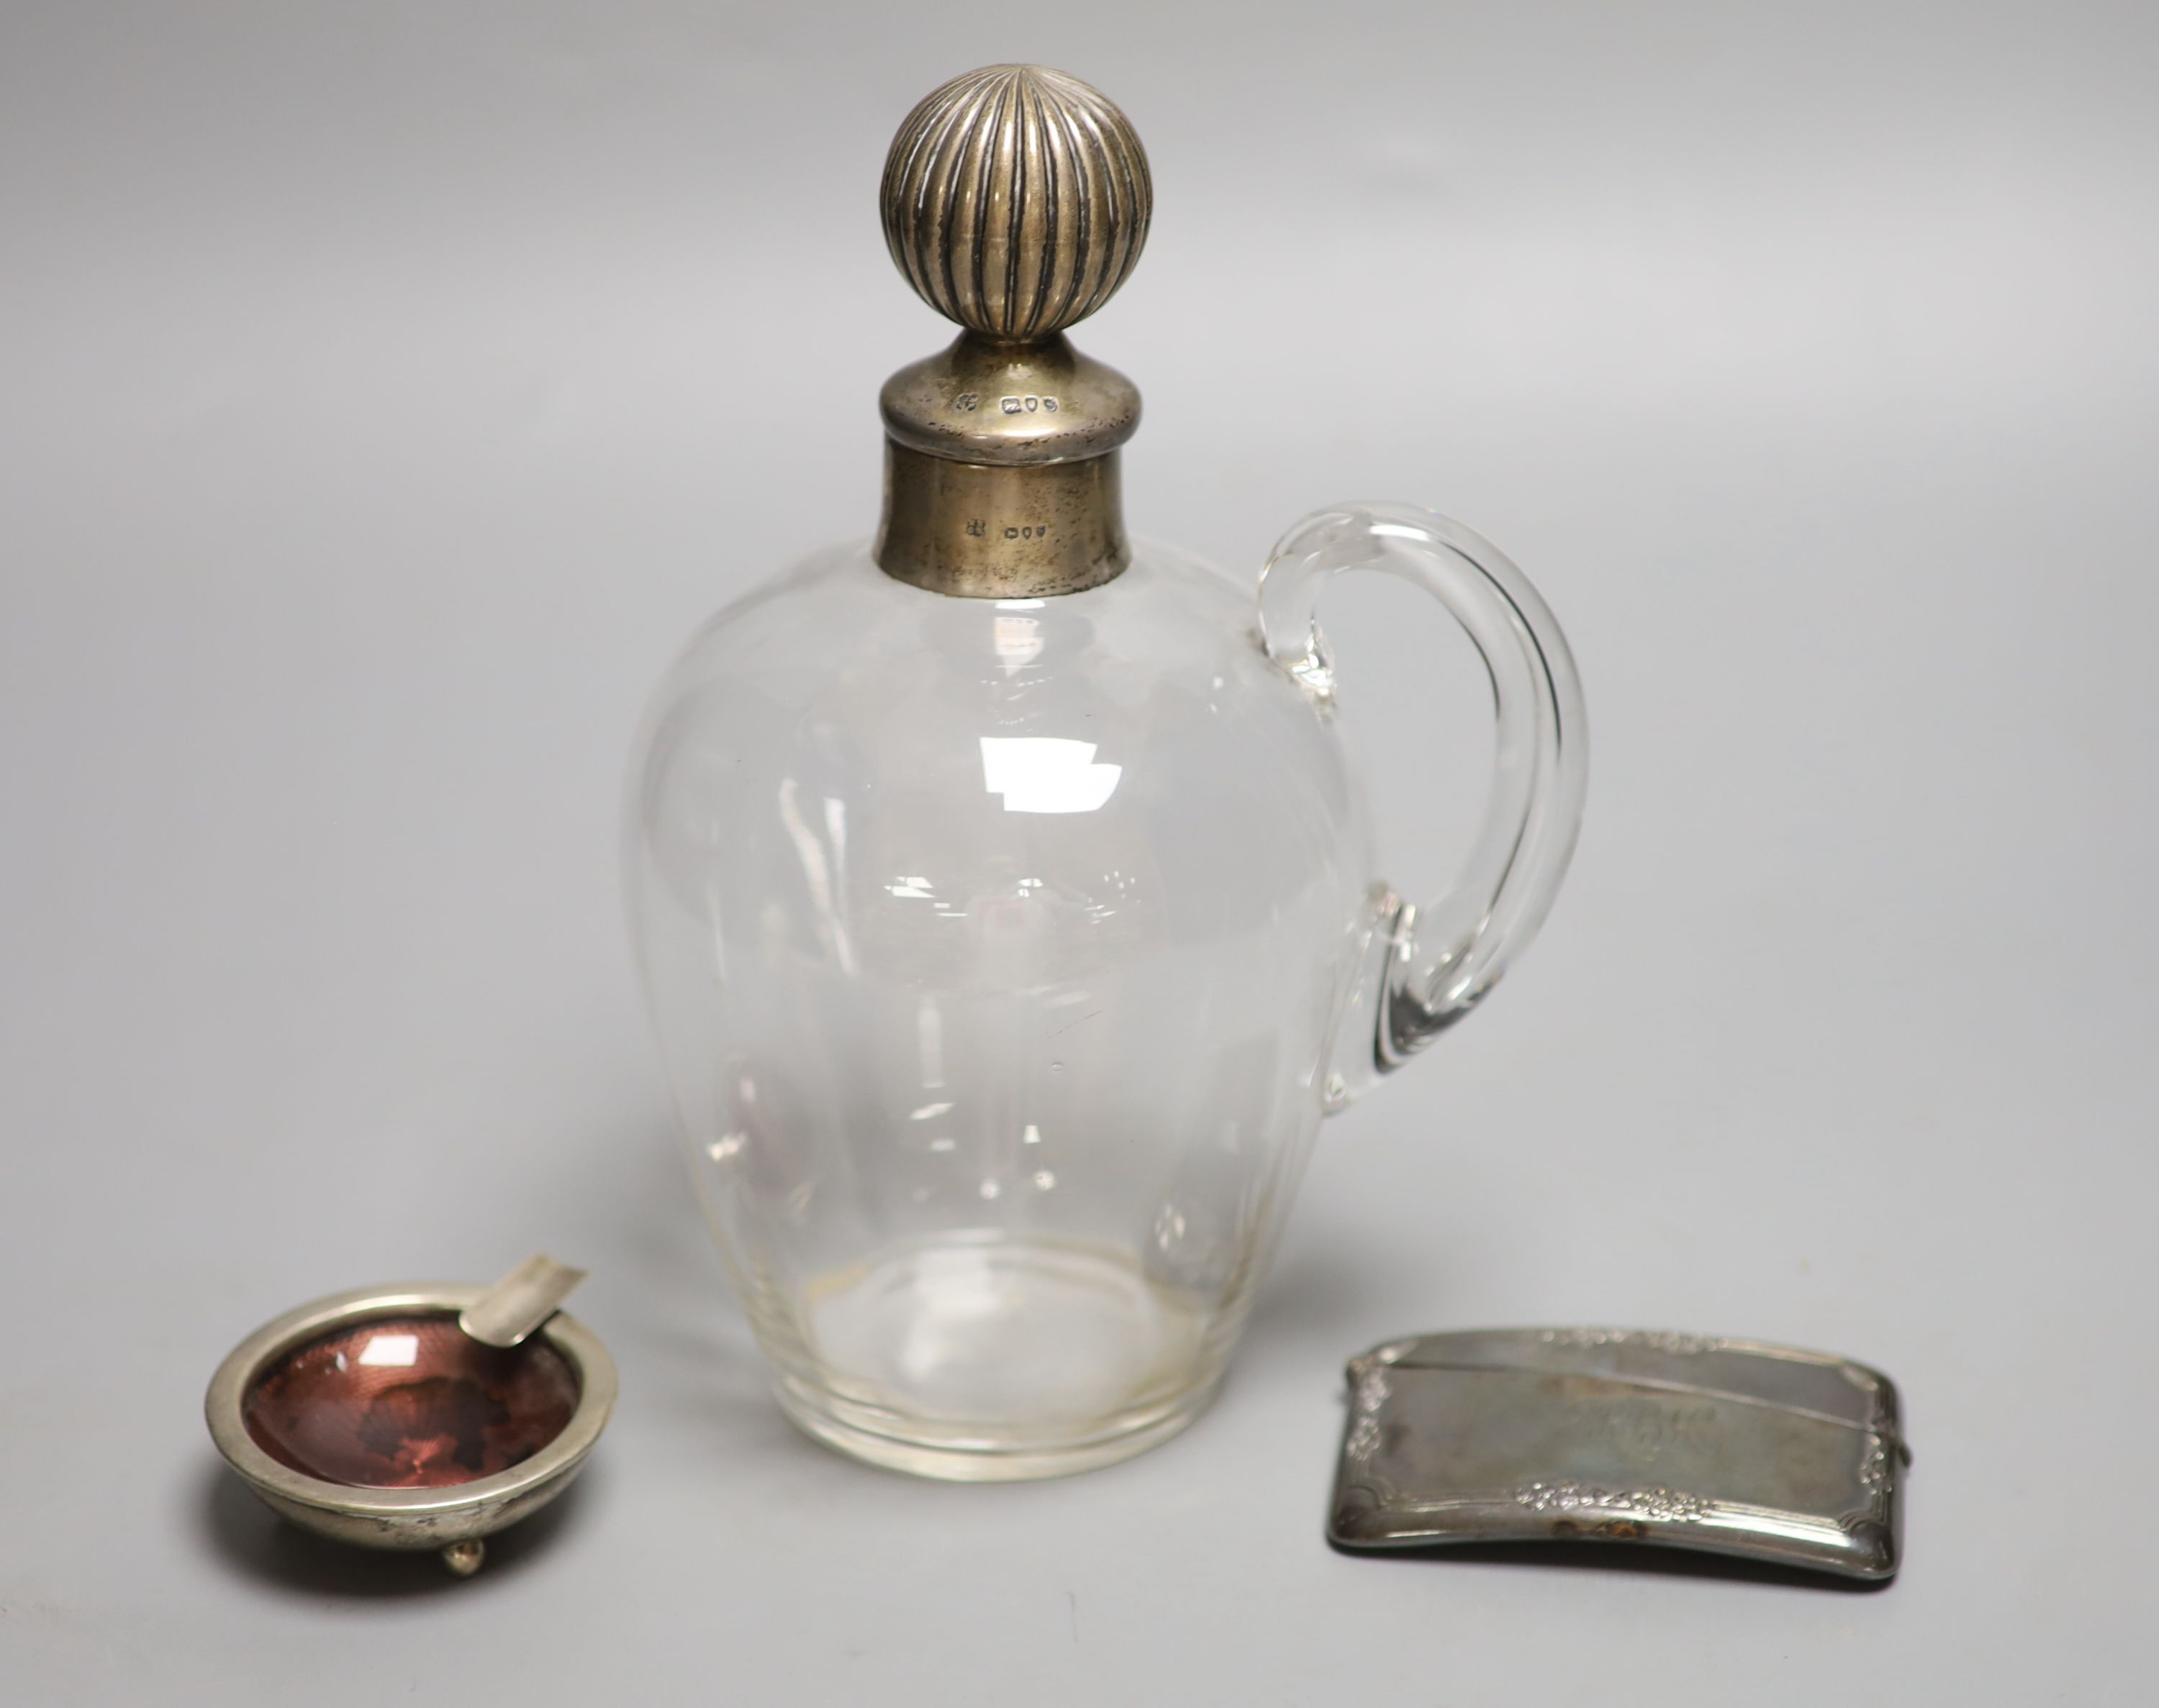 A late Victorian silver mounted glass decanter and stopper, London, 1893, 21.5cm, a silver card case